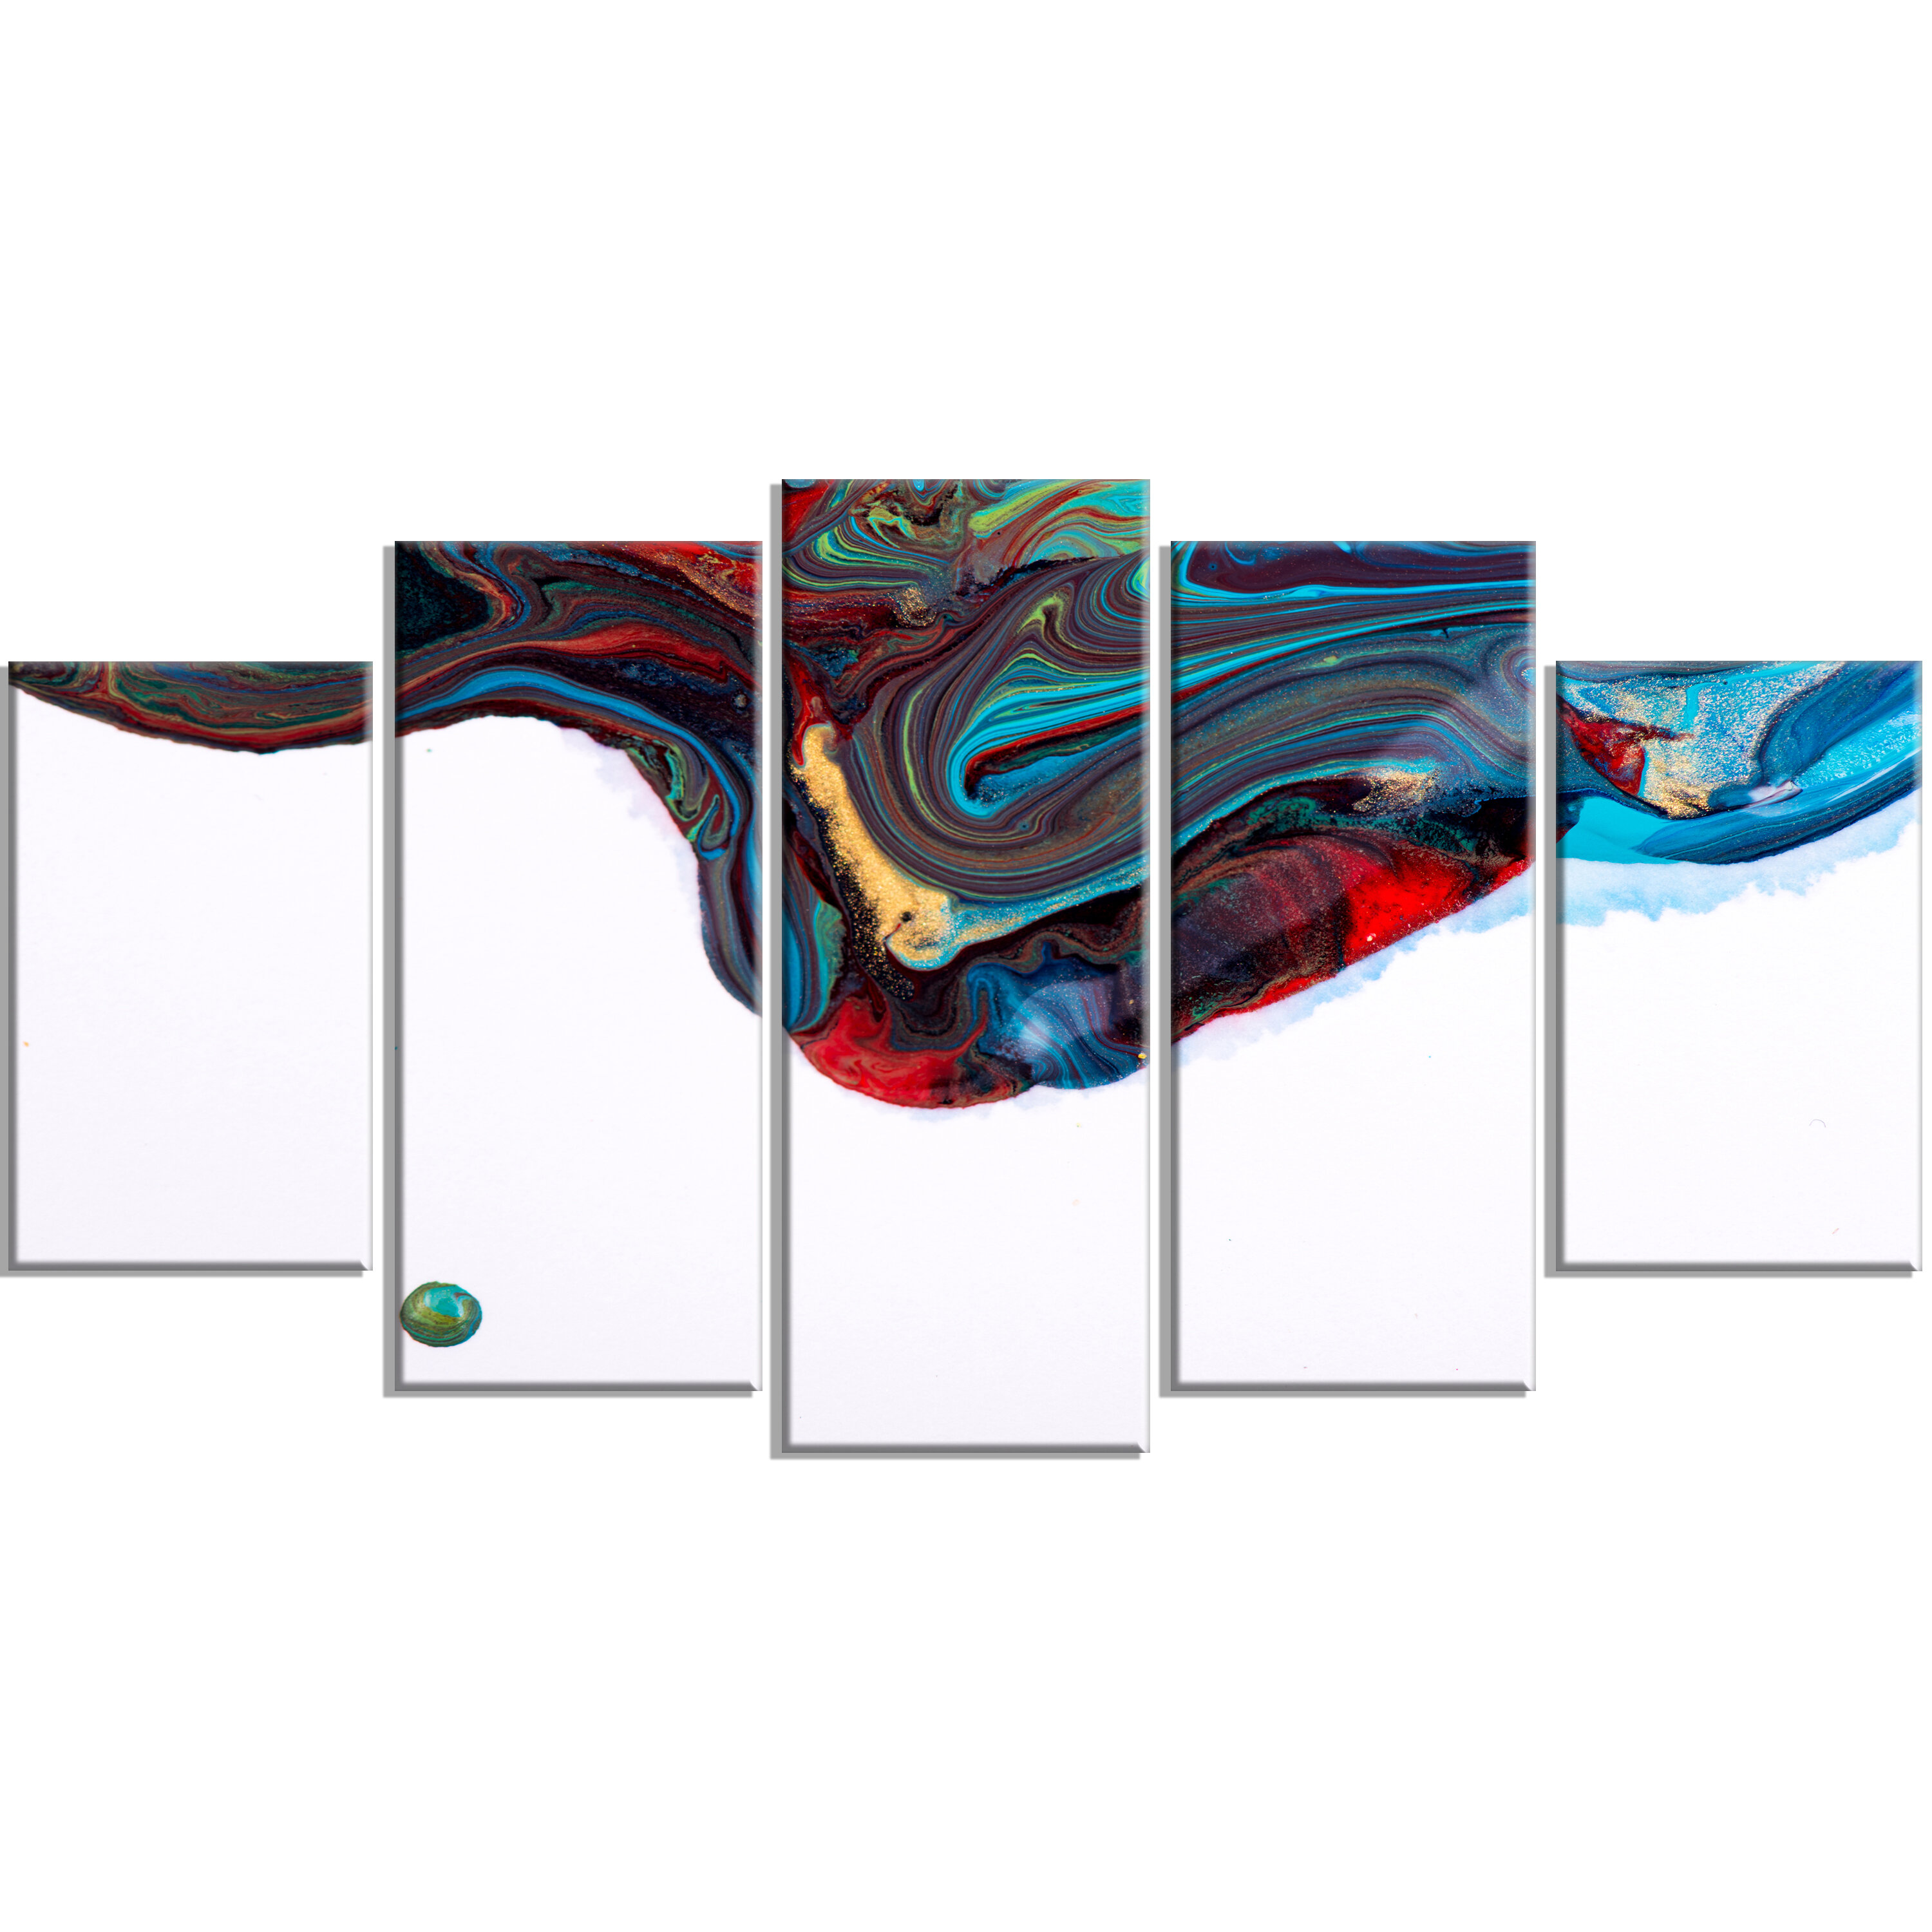 Ebern Designs Multicolor Abstract Acrylic Paint Mix 5 Piece Wall Art On Wrapped Canvas Set Wayfair